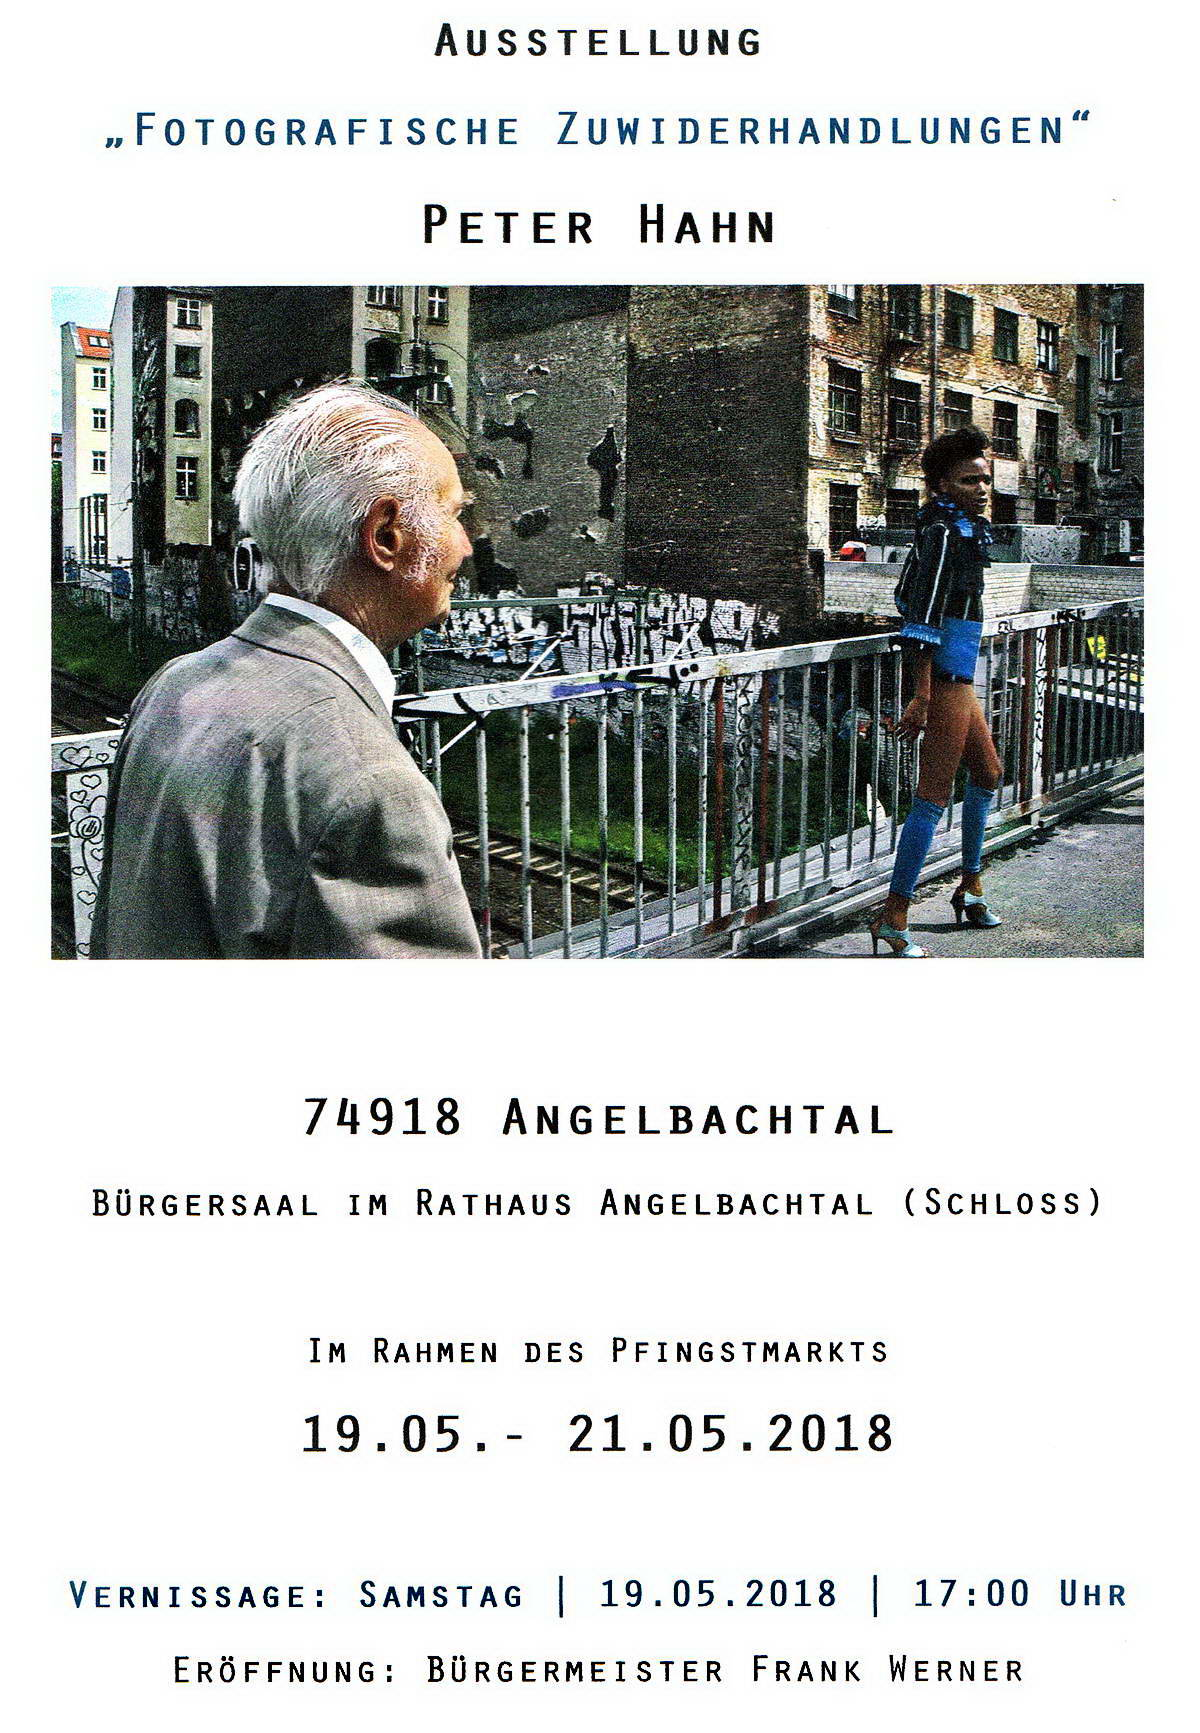 2018.05.19 Angelbachtal Vernissage 19.05. konv1a